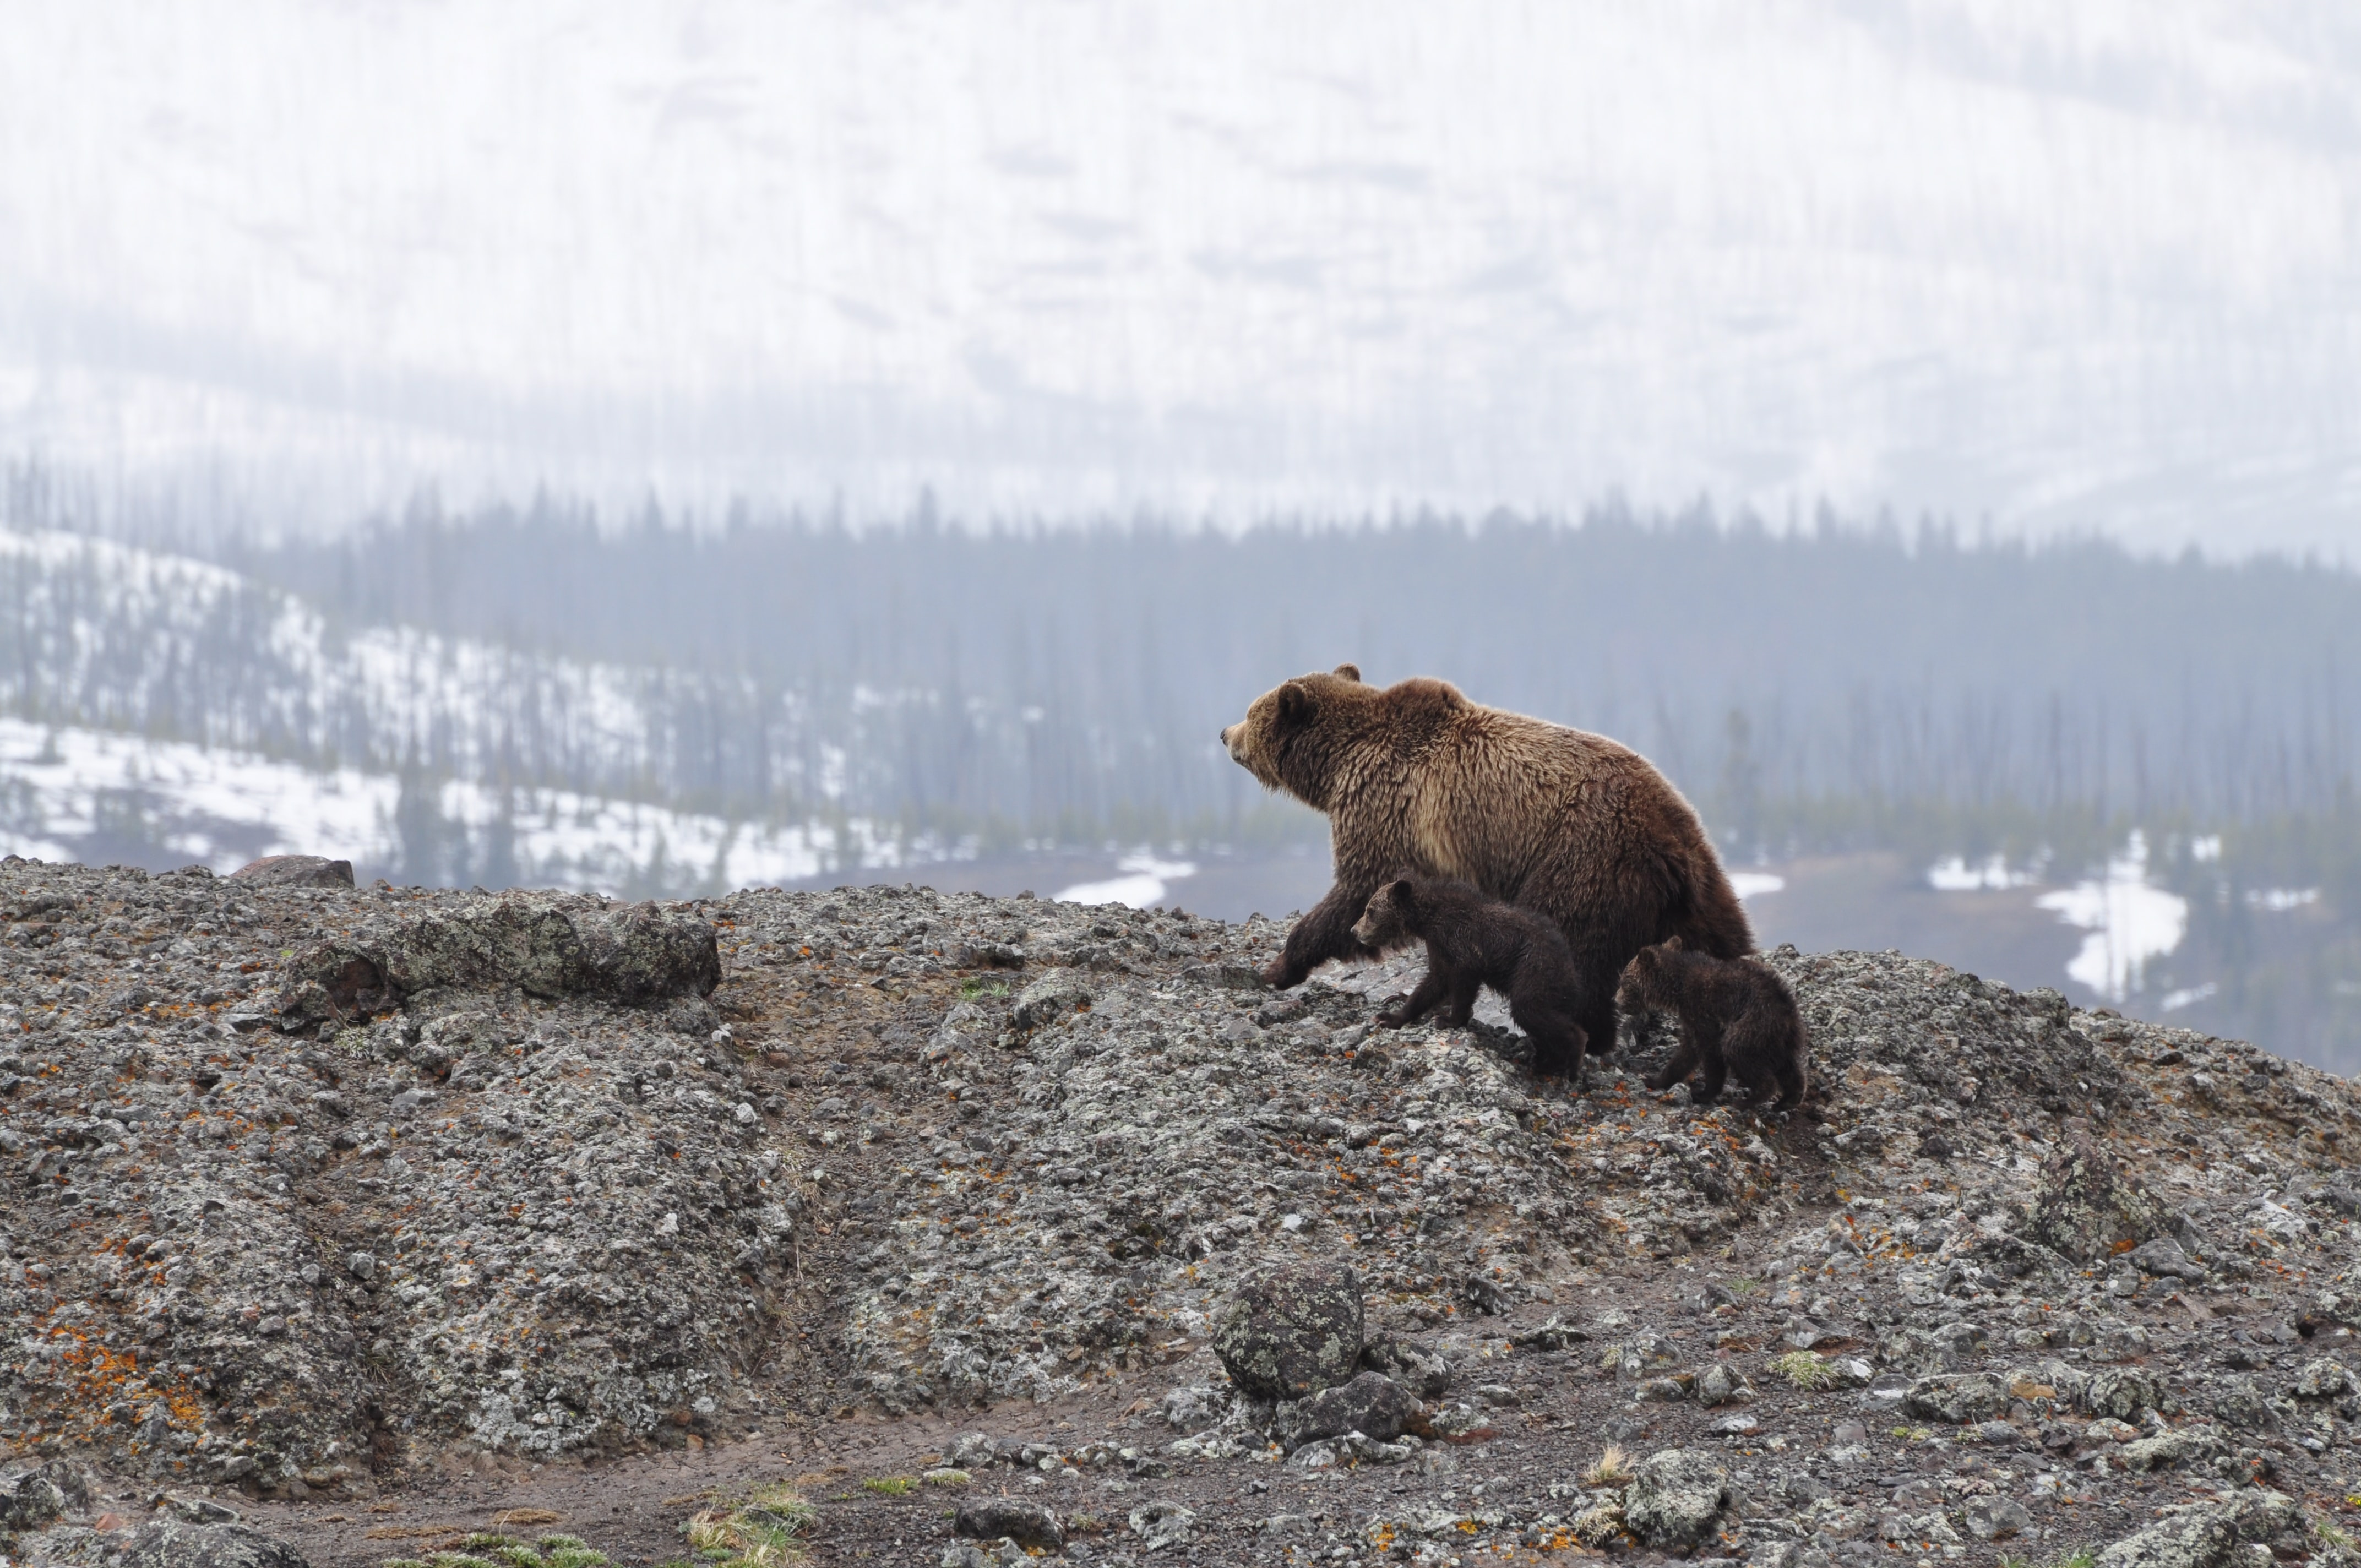 A large brown bear with two small cubs on a rocky hill in Yellowstone